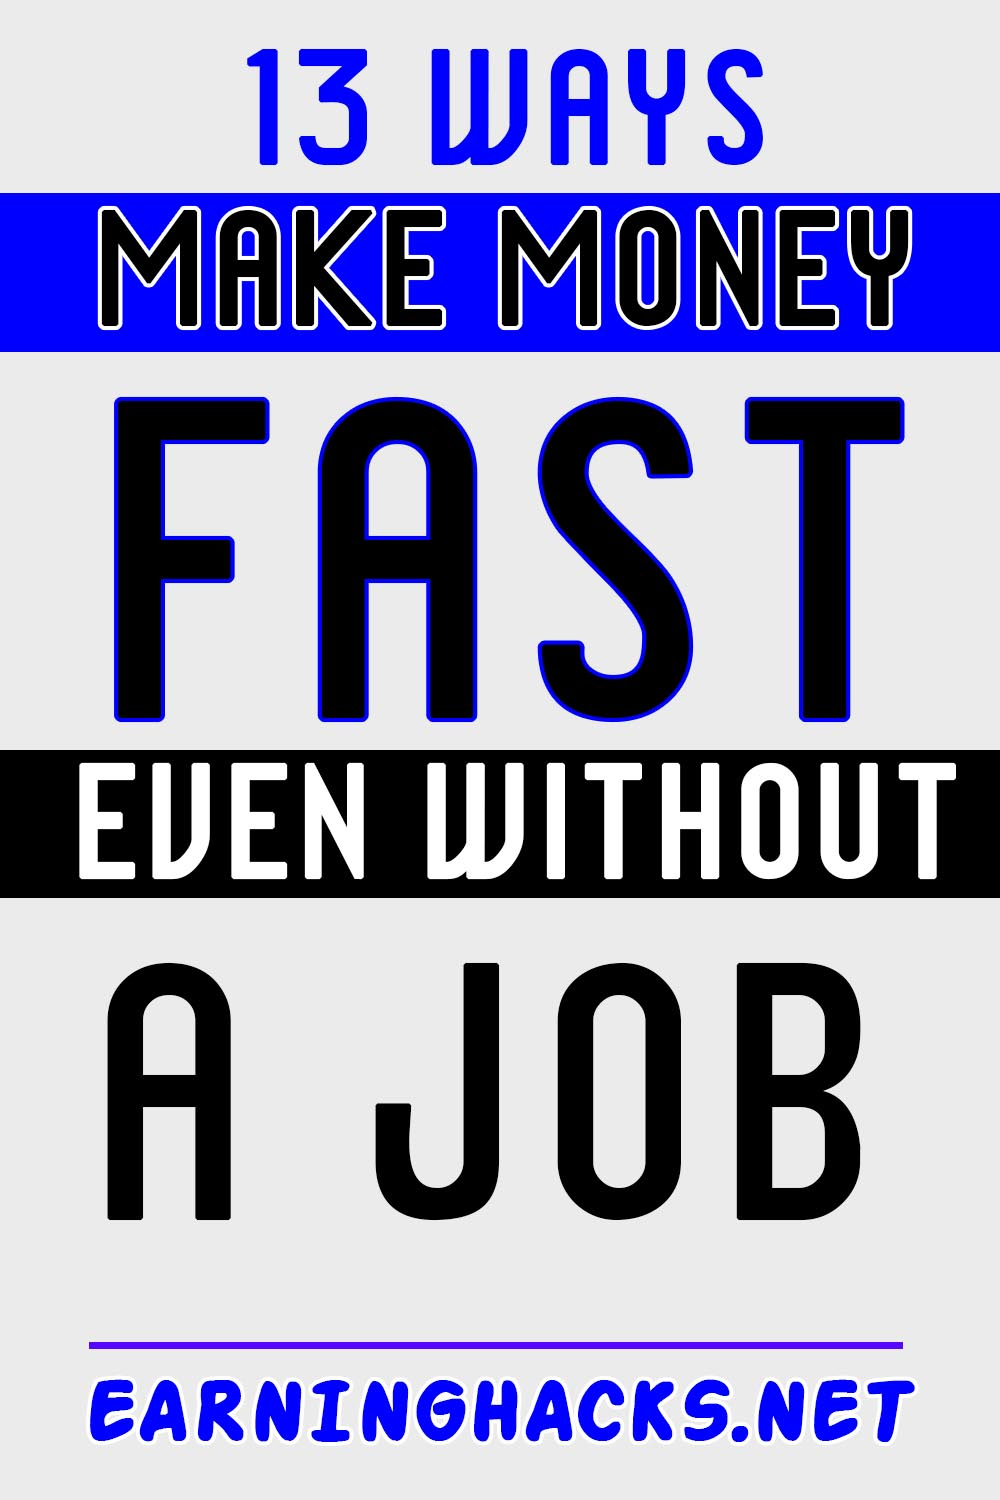 13 Ways Make Money Fast Even Without a Job